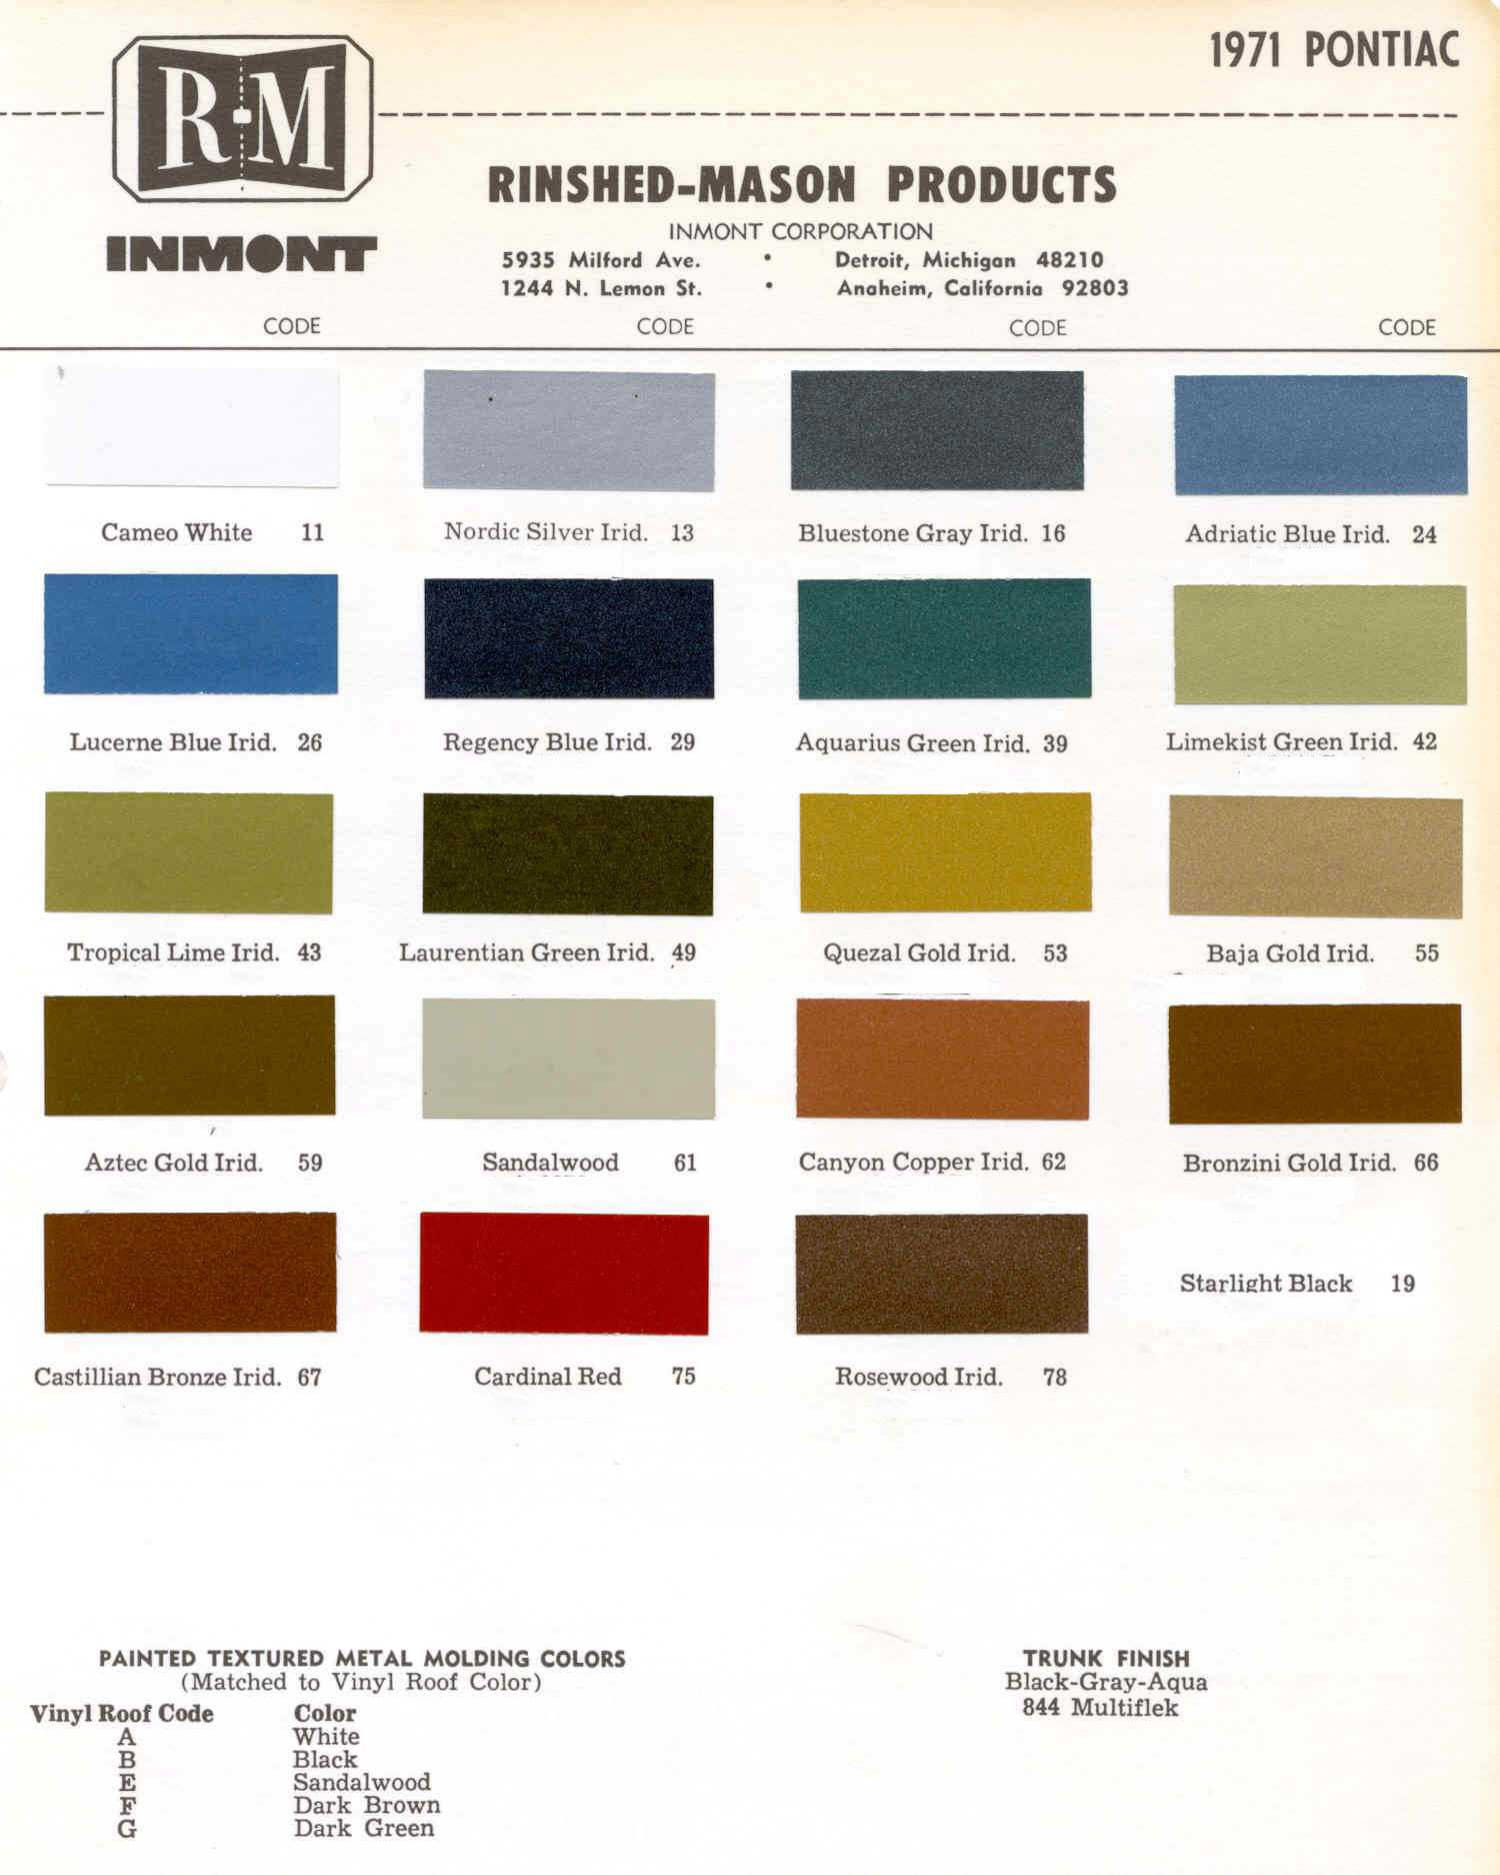 Color Code and Paint Color Chart for Pontiac in 1971